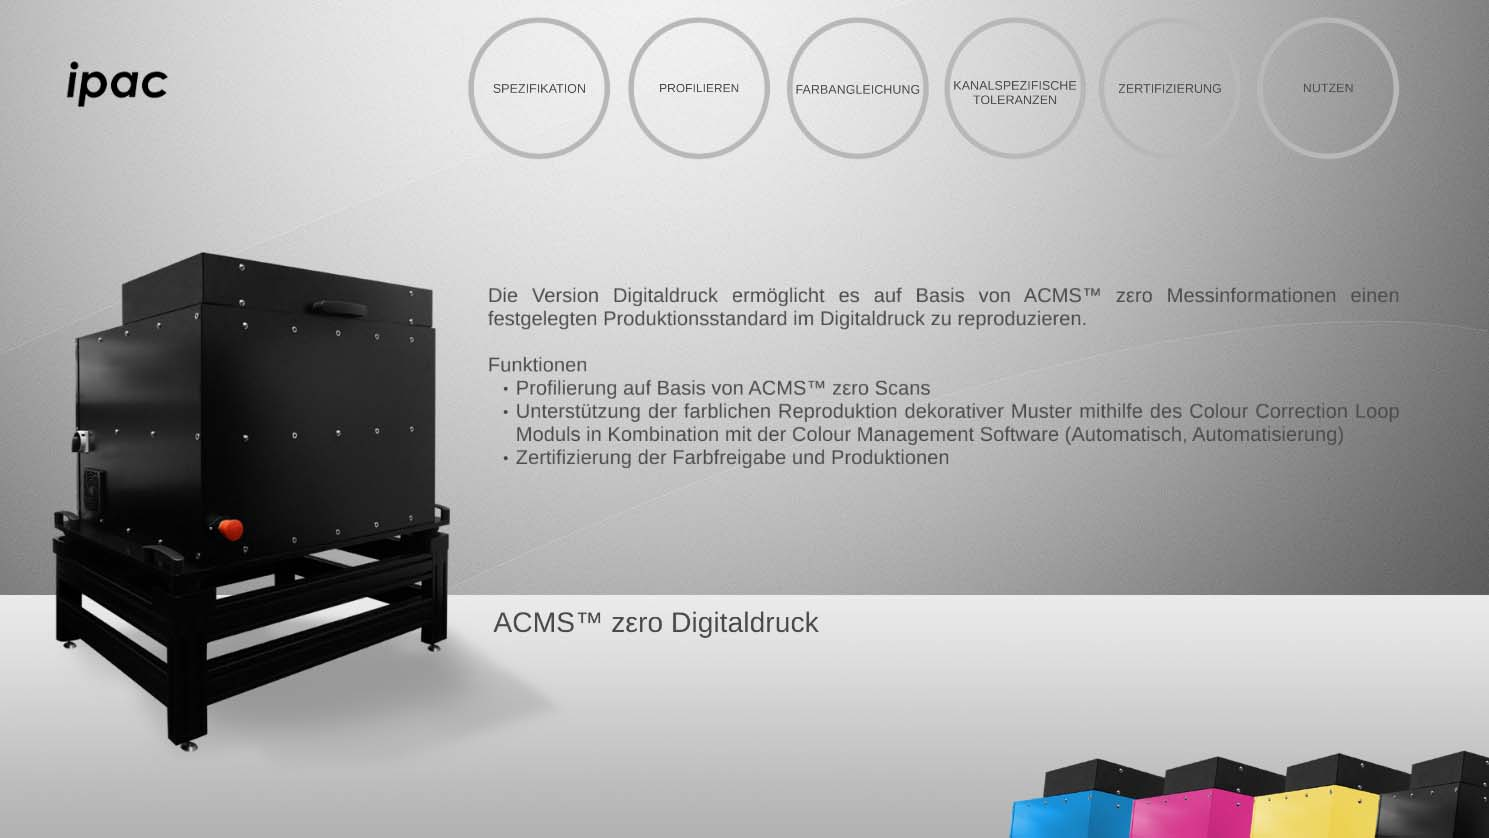 ACMS™zεro-Digitaldruck